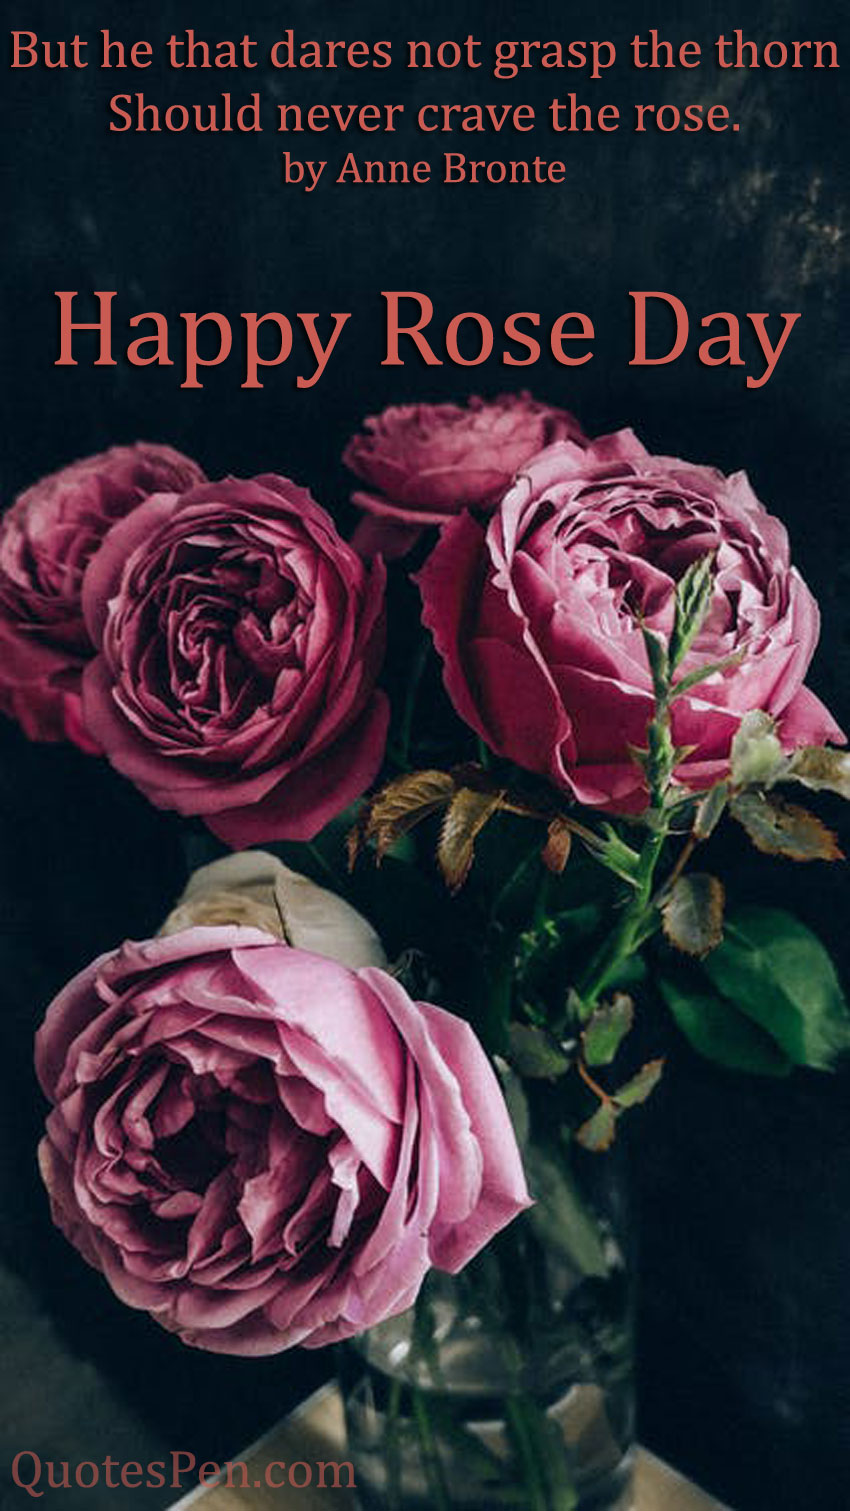 happy-rose-day-quote-2021